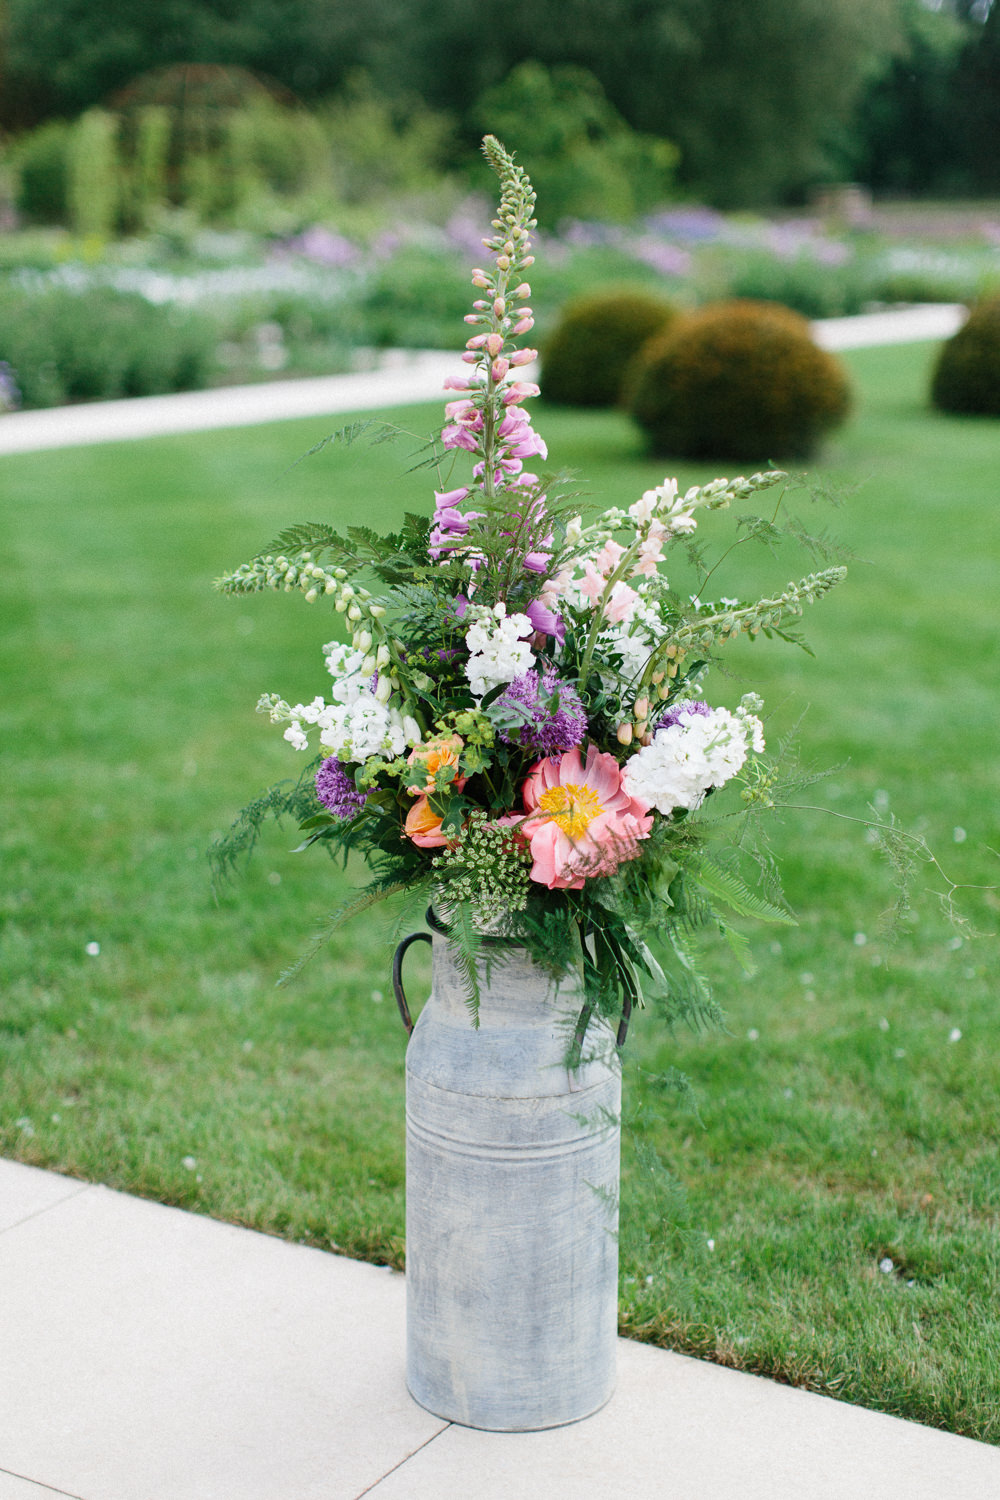 Milk Churn Flowers Floral Foxglove Stocks Garden Ceremony Wedding Melissa Beattie Photography